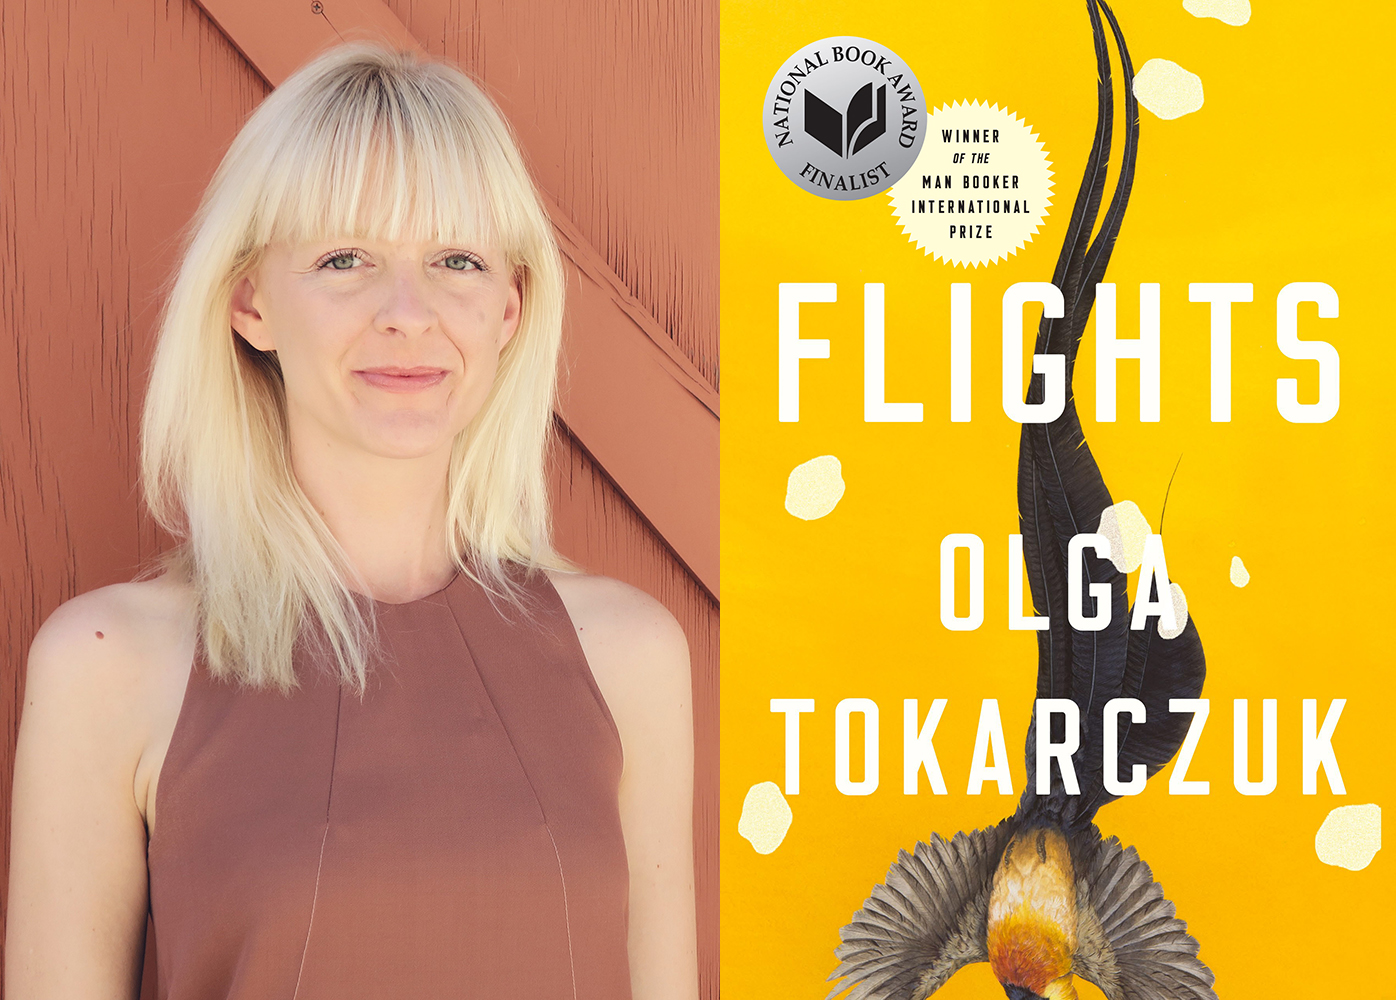 OLGA TOKARCZUK, FLIGHTS (trans. BY JENNIFER CROFT) - From the incomparably original Polish writer Olga Tokarczuk, Flights interweaves reflections on travel with an in-depth exploration of the human body, broaching life, death, motion, and migration.